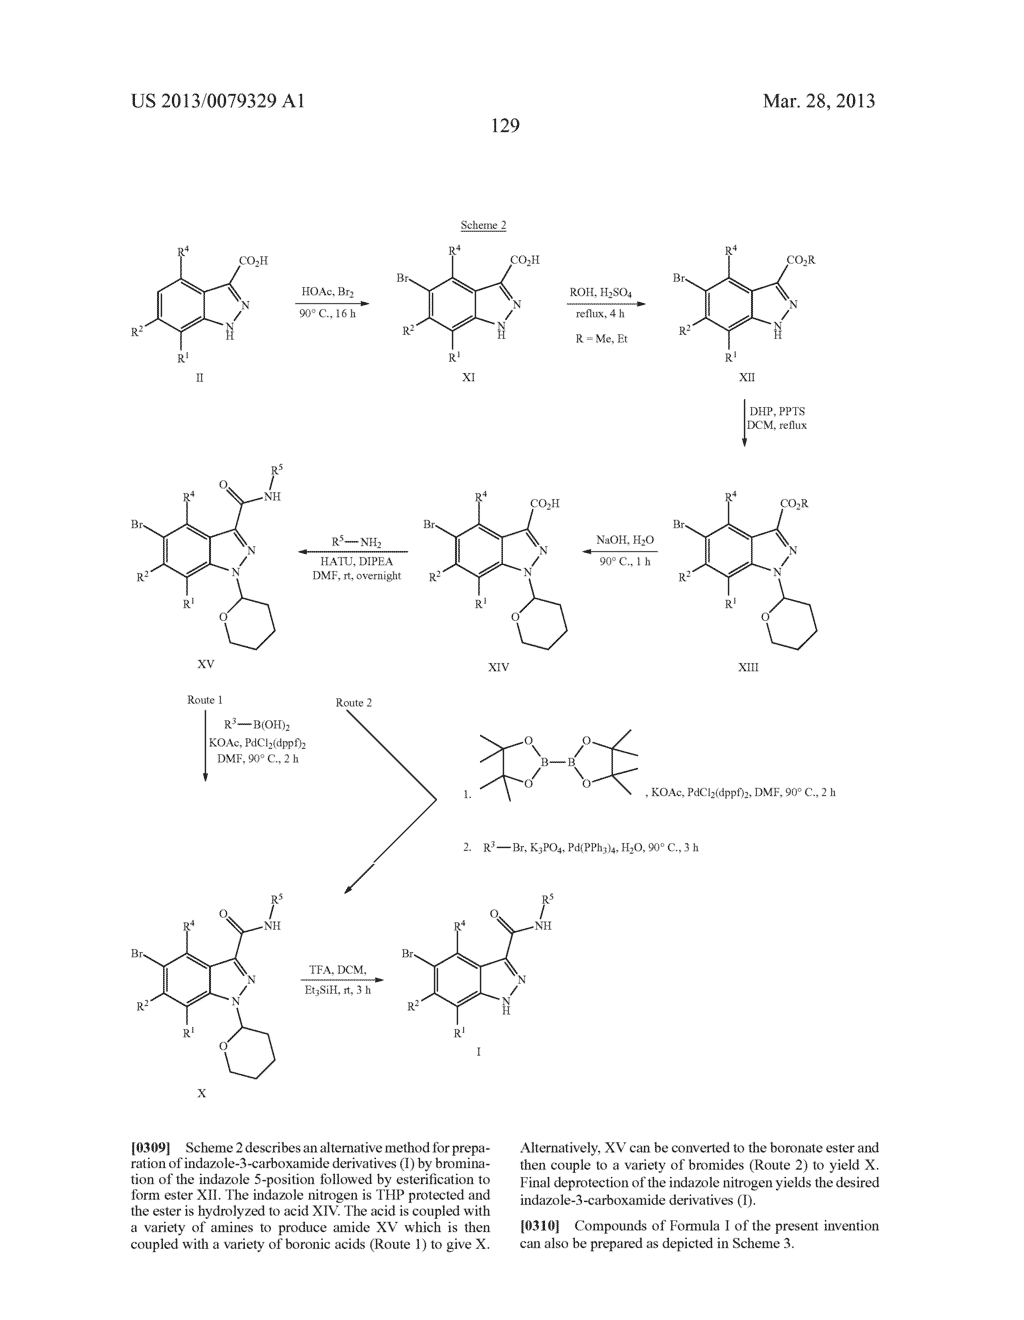 INDAZOLE-3-CARBOXAMIDES AND THEIR USE AS WNT/Beta-CATENIN SIGNALING     PATHWAY INHIBITORS - diagram, schematic, and image 130